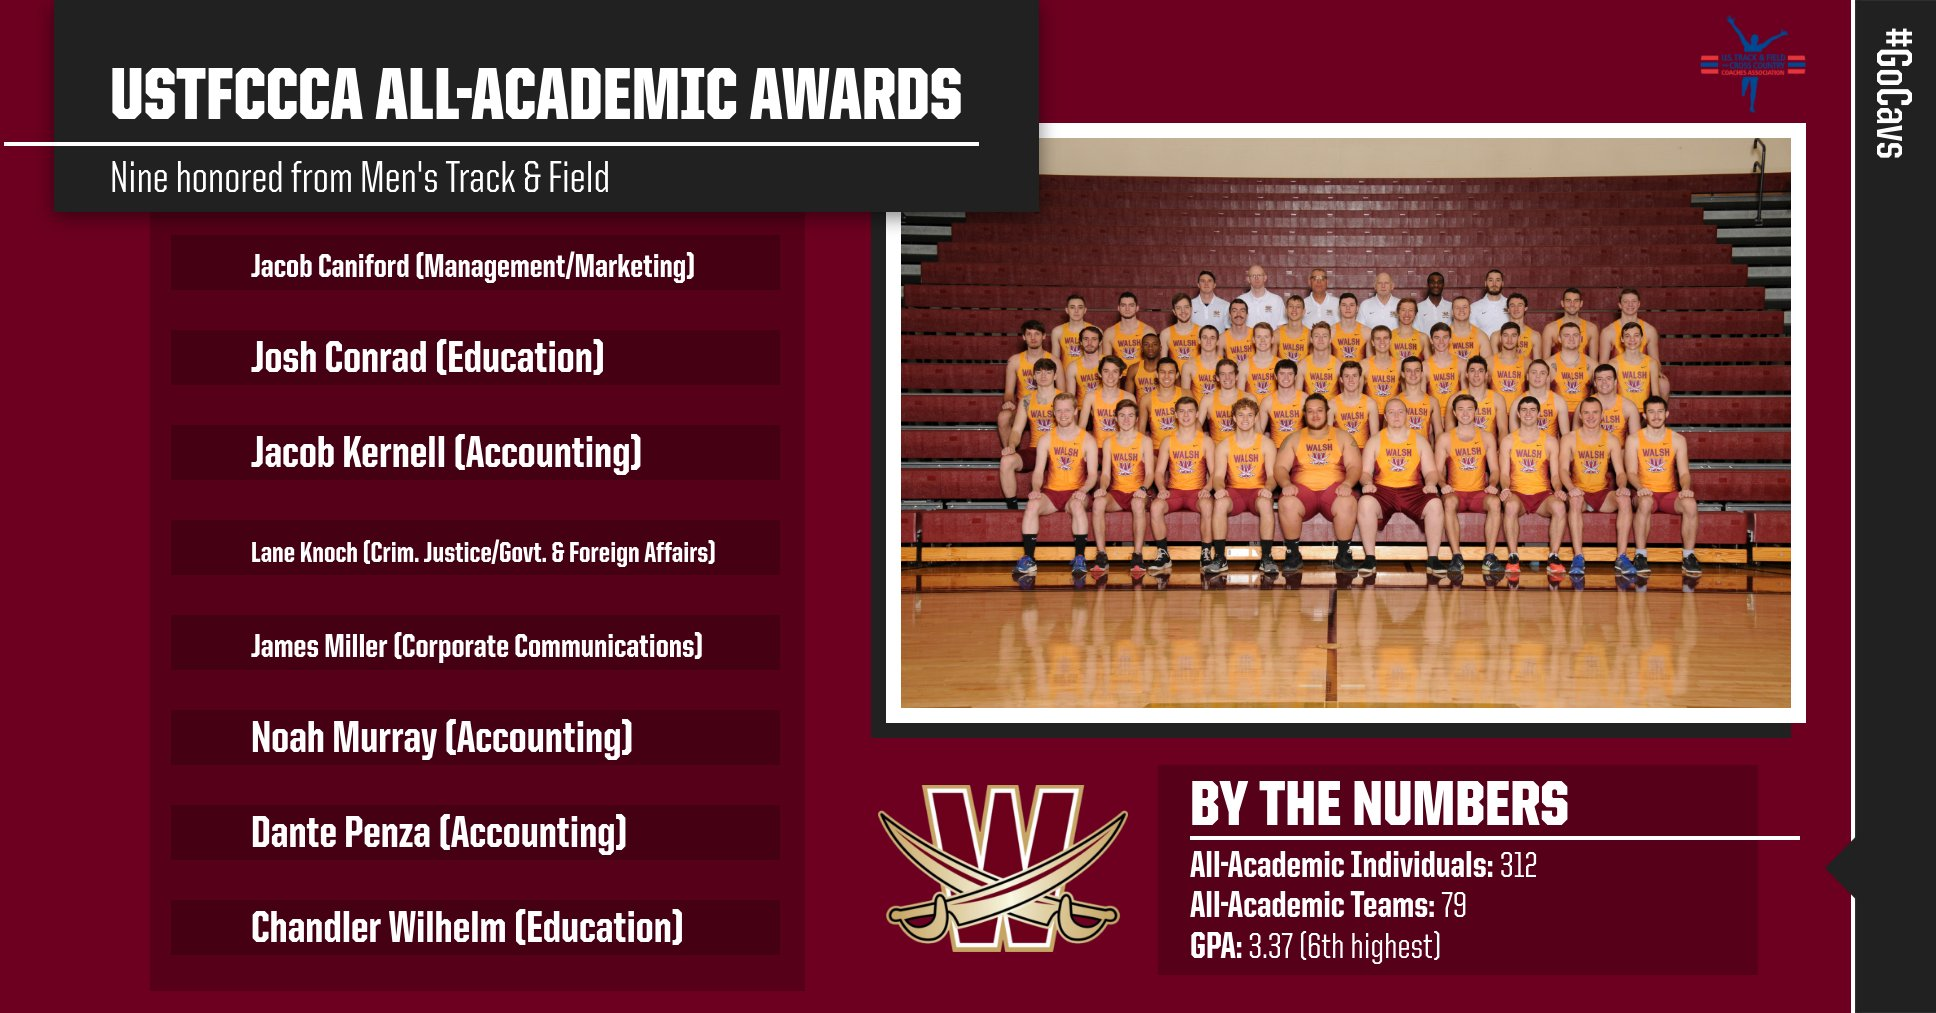 Eight Cavaliers Named USTFCCCA All-Academic; Men's 6th Highest GPA